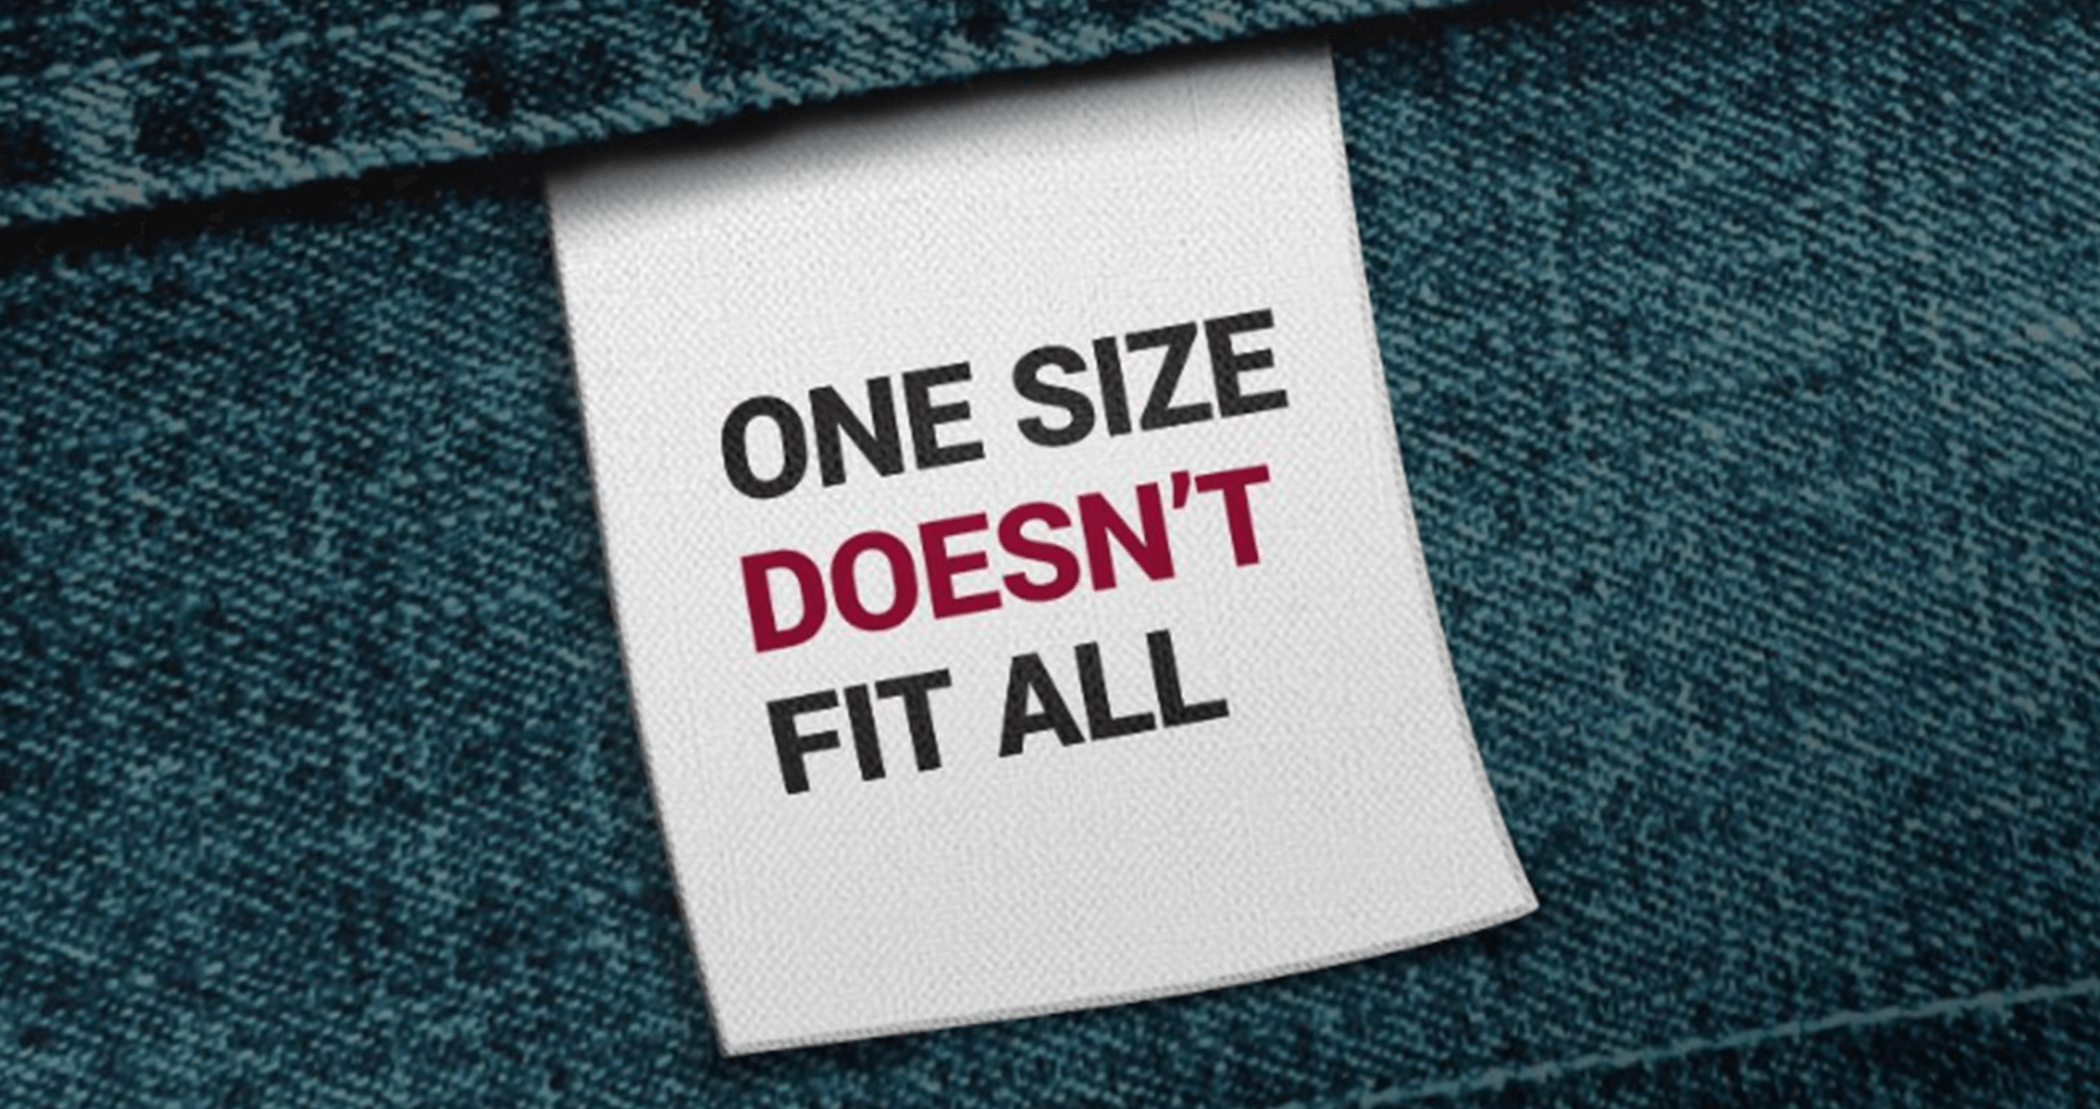 Risk culture is not one size fits all. Clothe tag with one size fit's all written